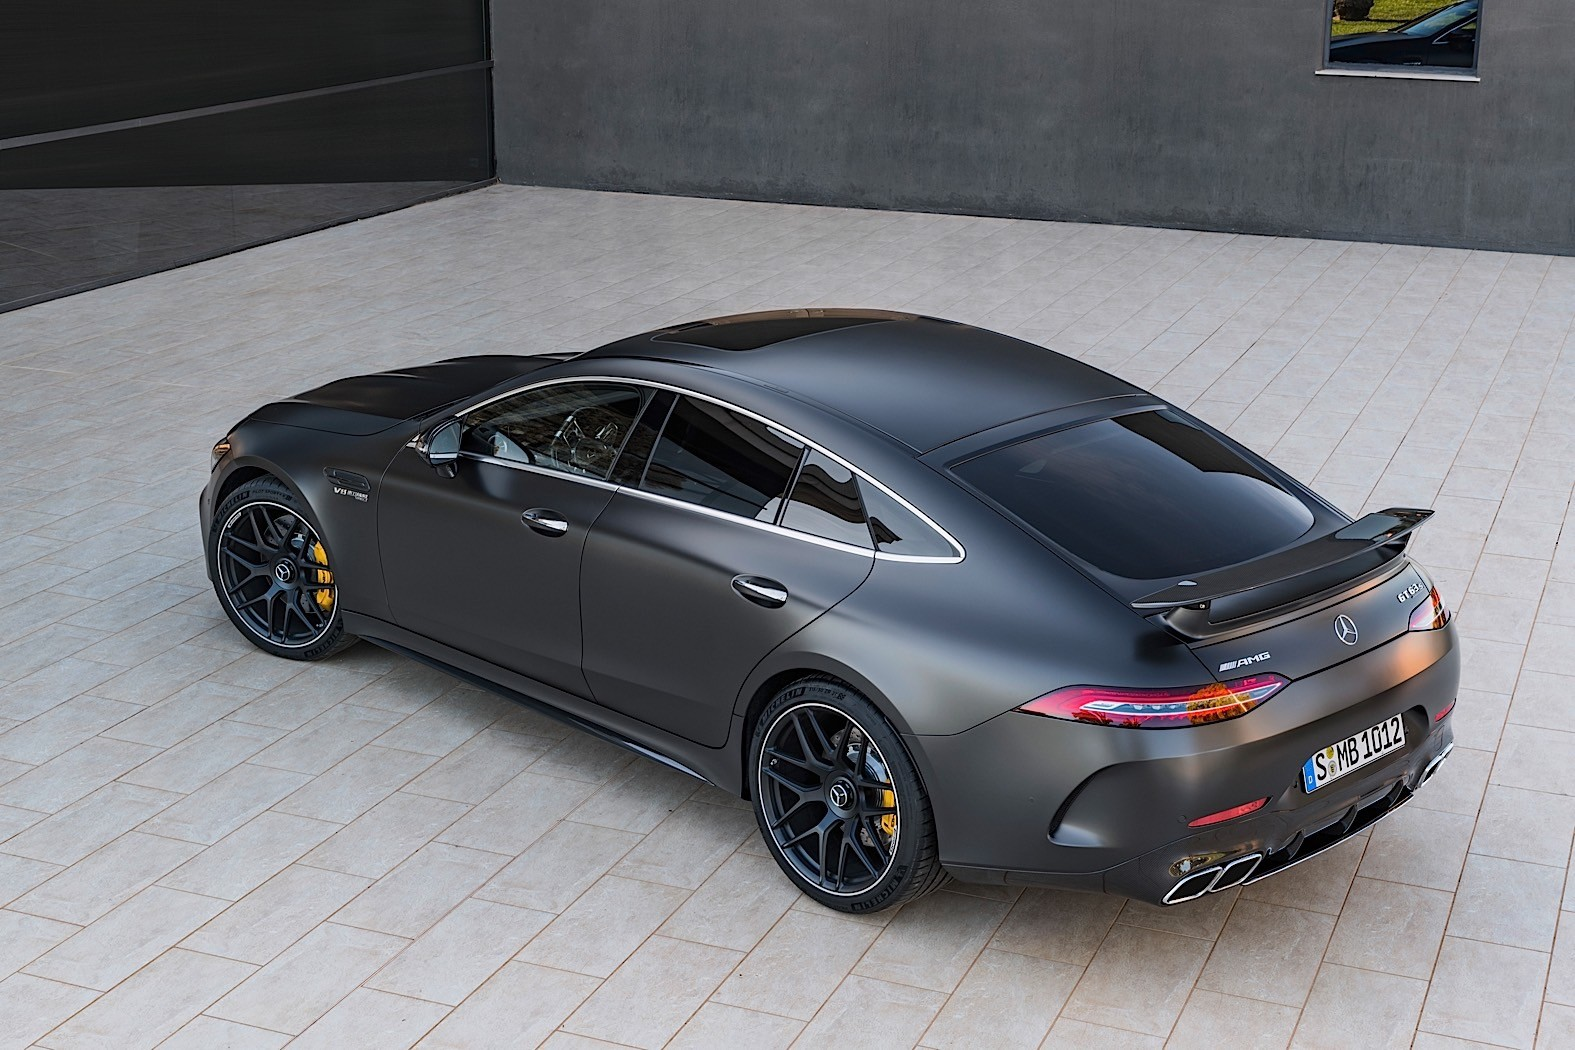 2019 mercedes amg gt 4 door coupe goes live in geneva for Mercedes benz amg gt coupe price